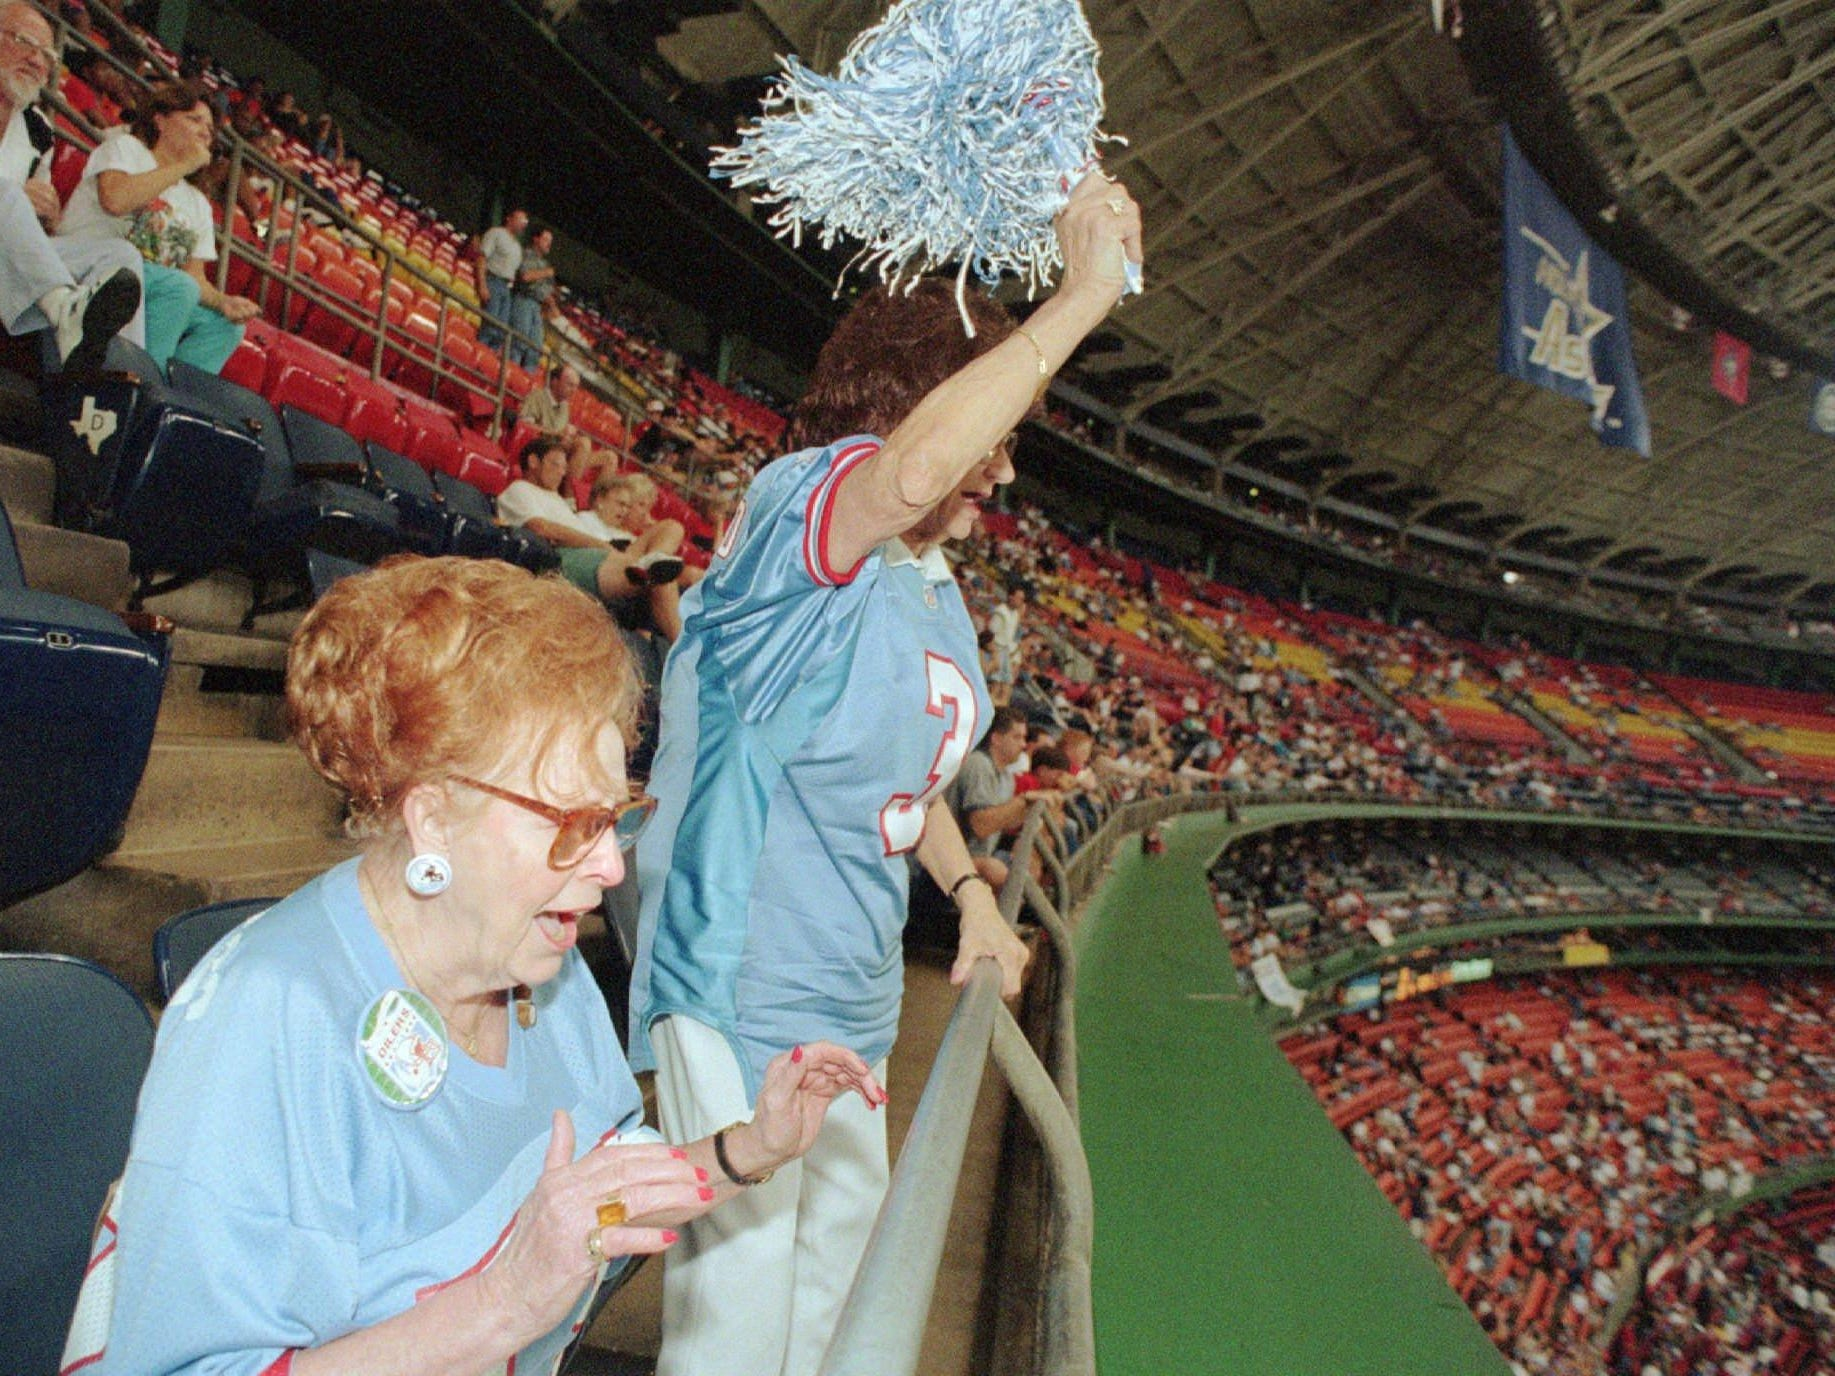 Houston Oilers fans since 1960, Frances Proctor, left, and Renee May cheer for their team in the final quarter of the Oilers' 20-19 loss to the Kansas City Chiefs Sept. 1, 1996, in Houston. As the Oilers play possibly their final season in Houston before moving to Nashville, the fans are staying away in droves.